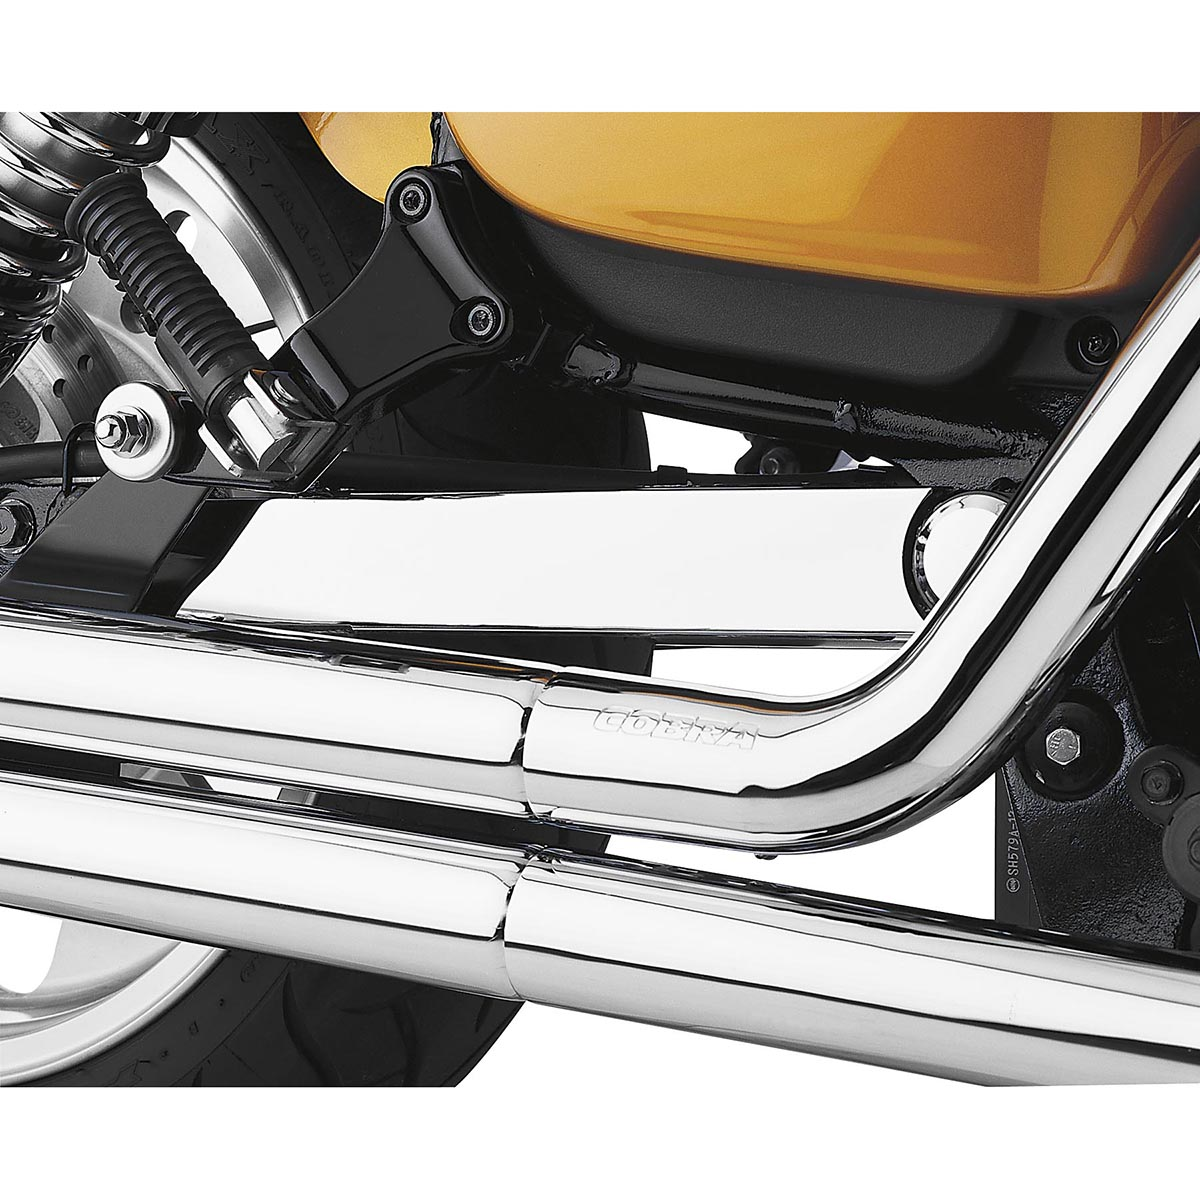 COBRA Swingarm Cover for SUZUKI Boulevard VZR 1800 M109R(06-14) & 1800N M109R2(08-09) & 1800N M109RB Boss (14-16) & 1800Z M109RZ Limited(07-14) - #06-0846